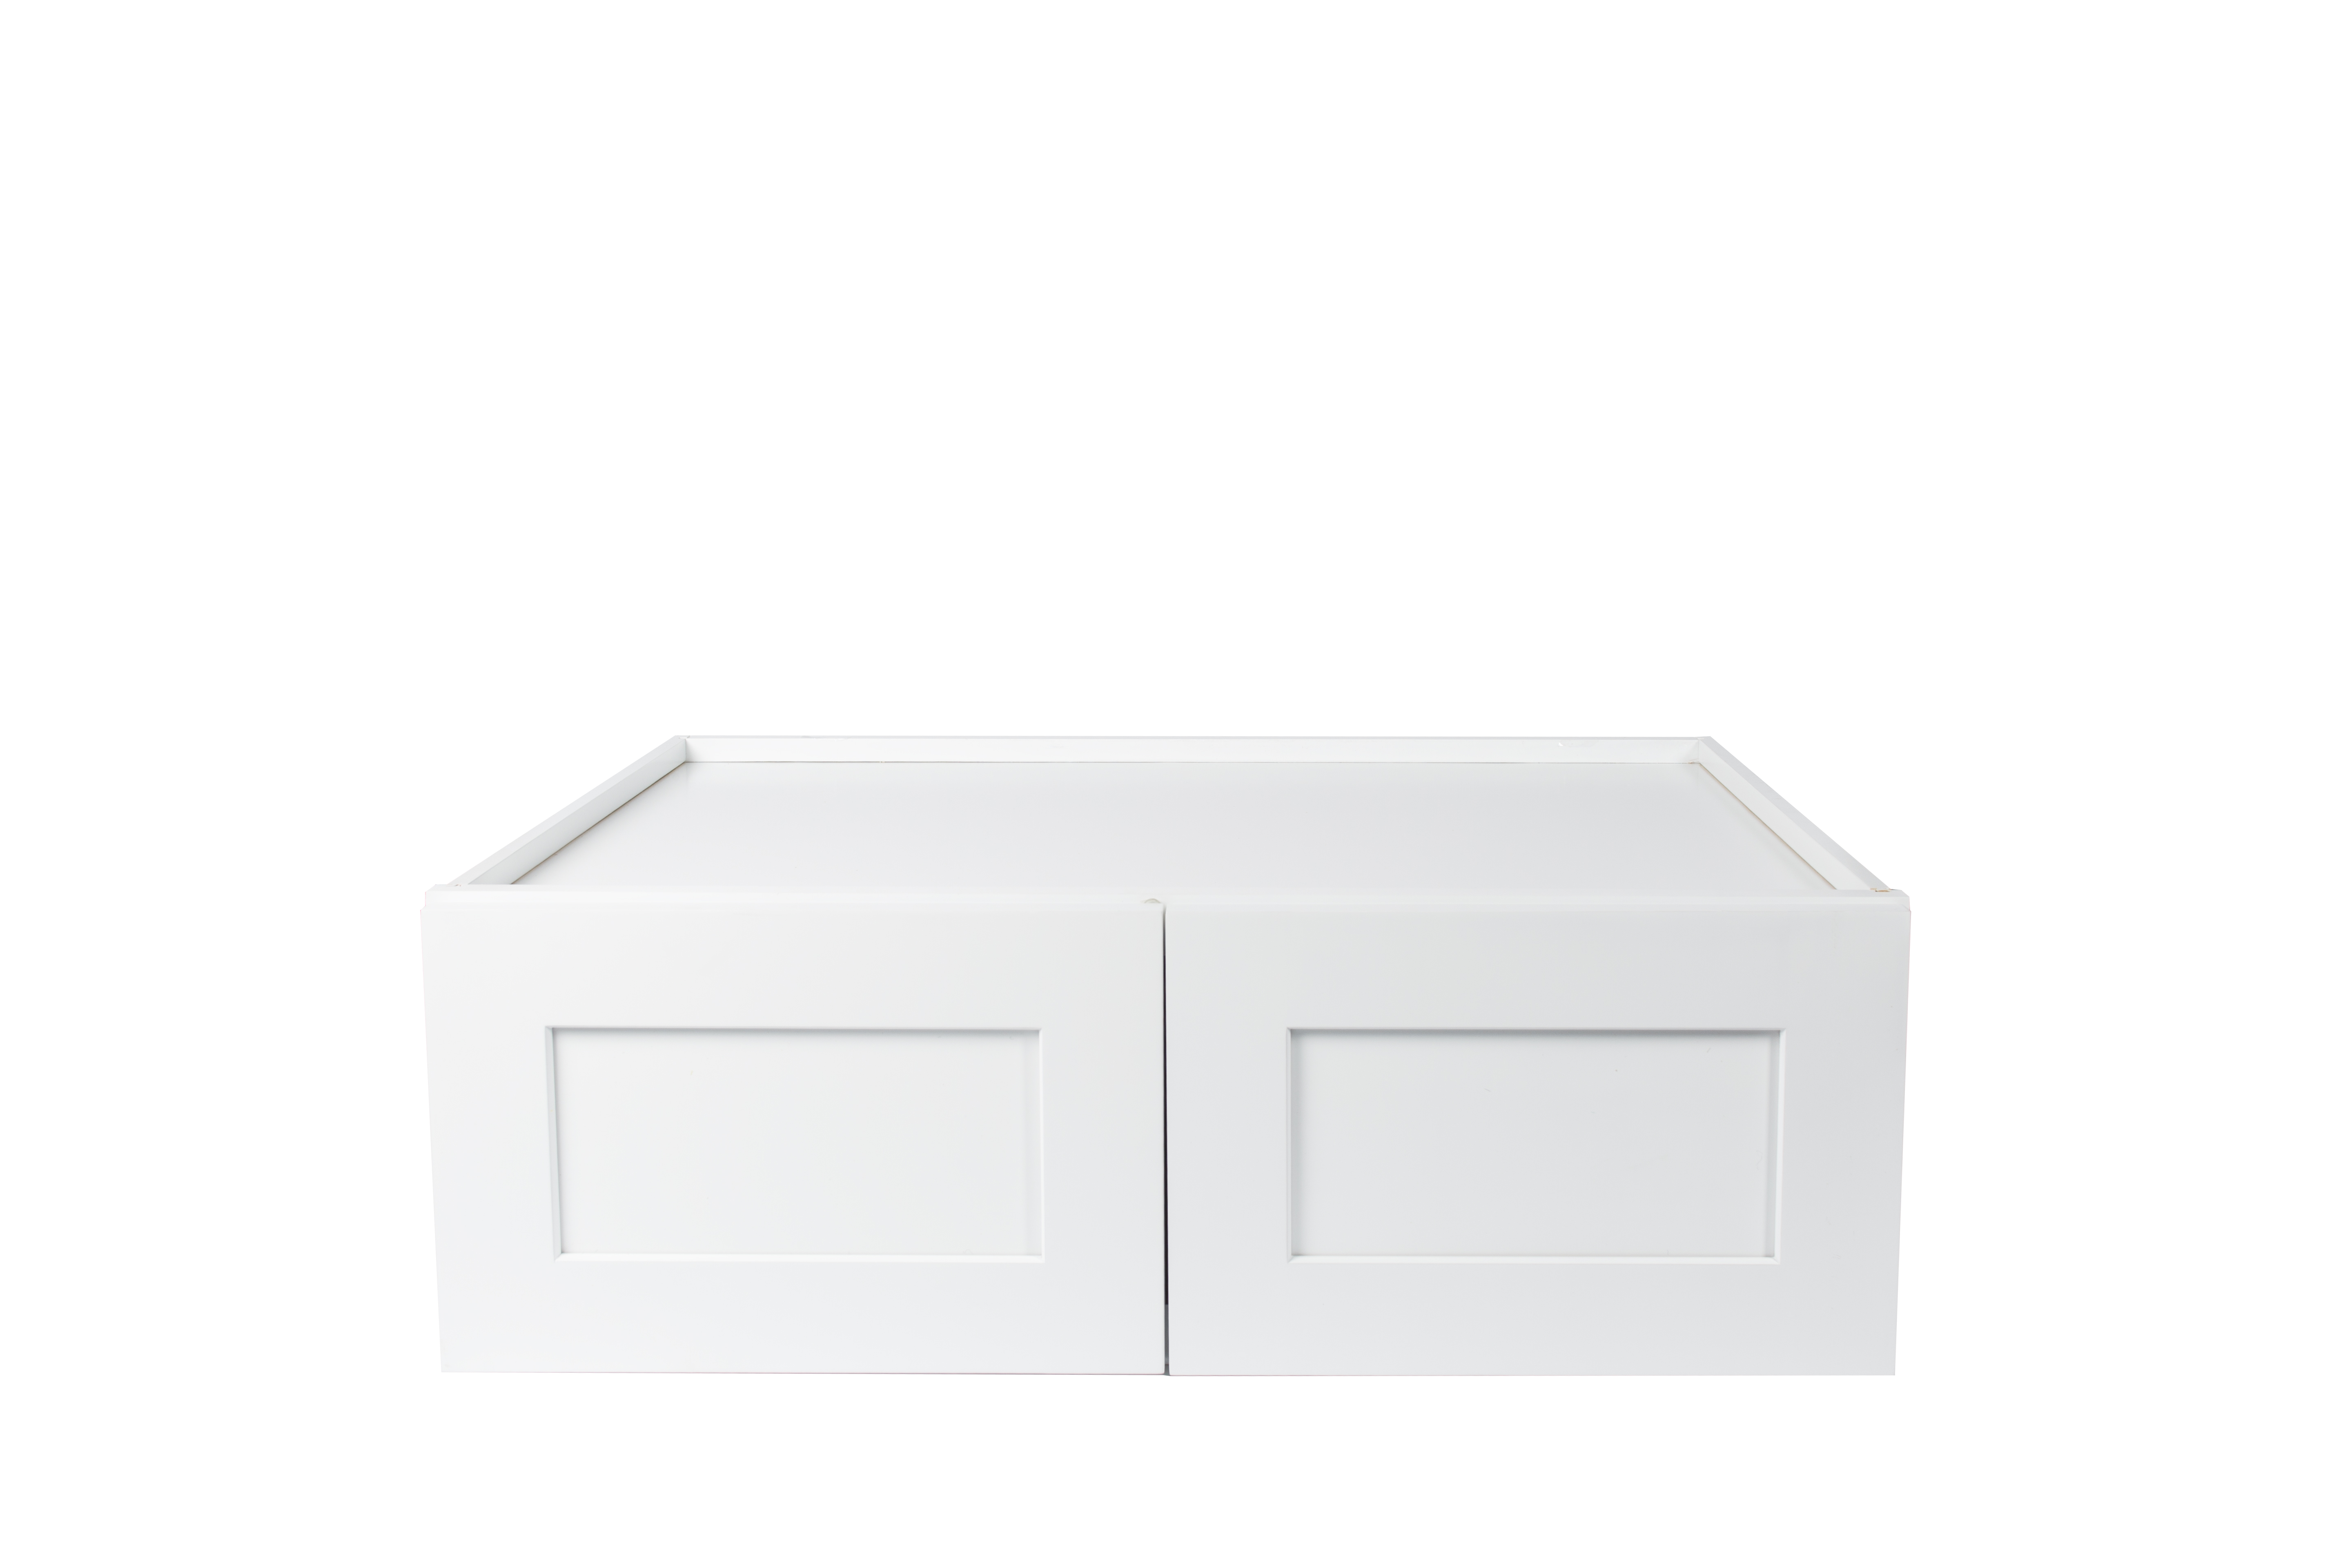 Ready to Assemble 30x21x24 in. Shaker High Double Door Wall Cabinet in White